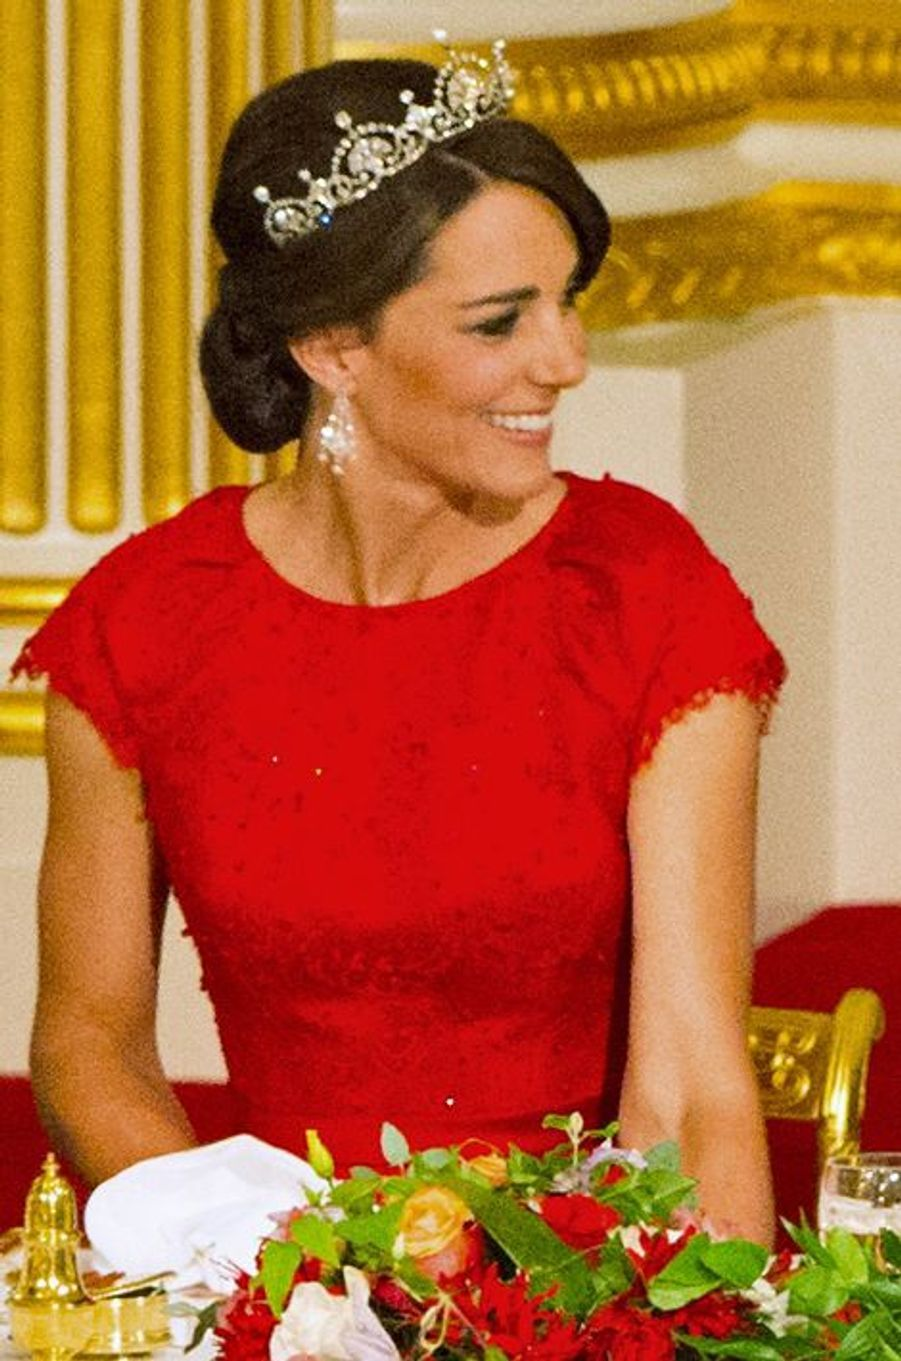 La duchesse de Cambridge Kate à Buckingham Palace, le 20 octobre 2015